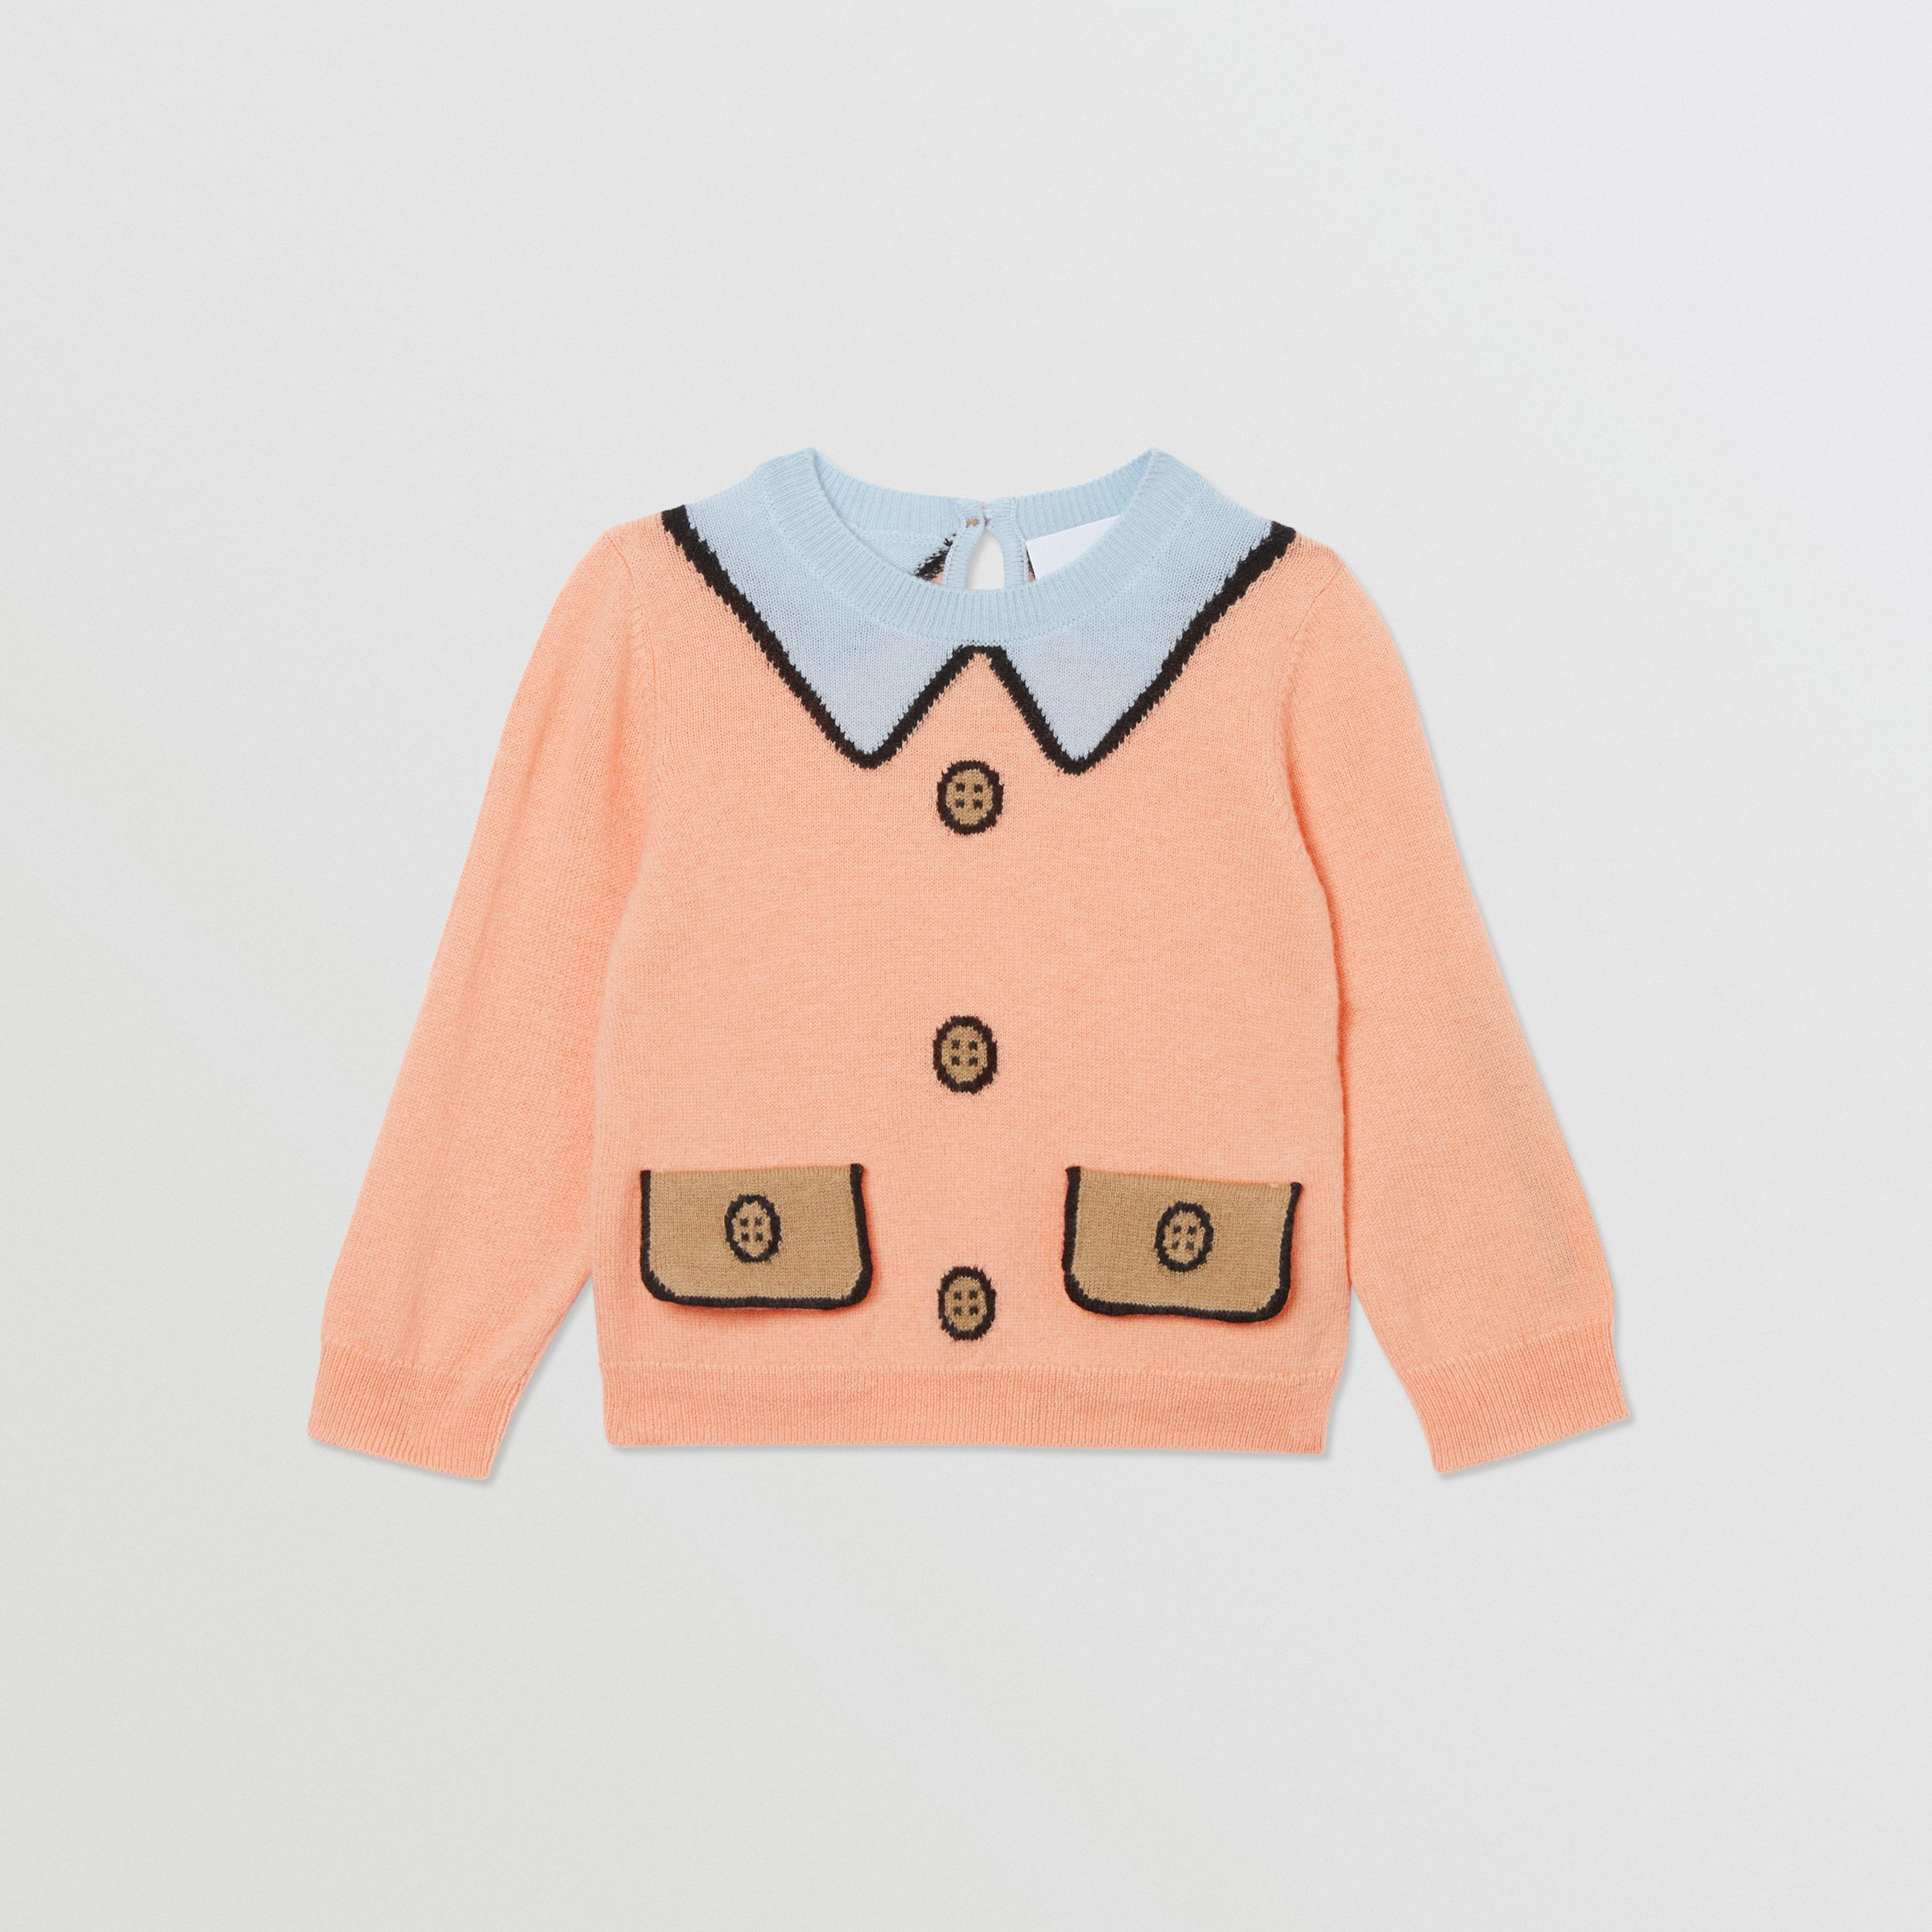 Trompe L'Oeil Intarsia Wool Cashmere Sweater in Peach - Children | Burberry - 1